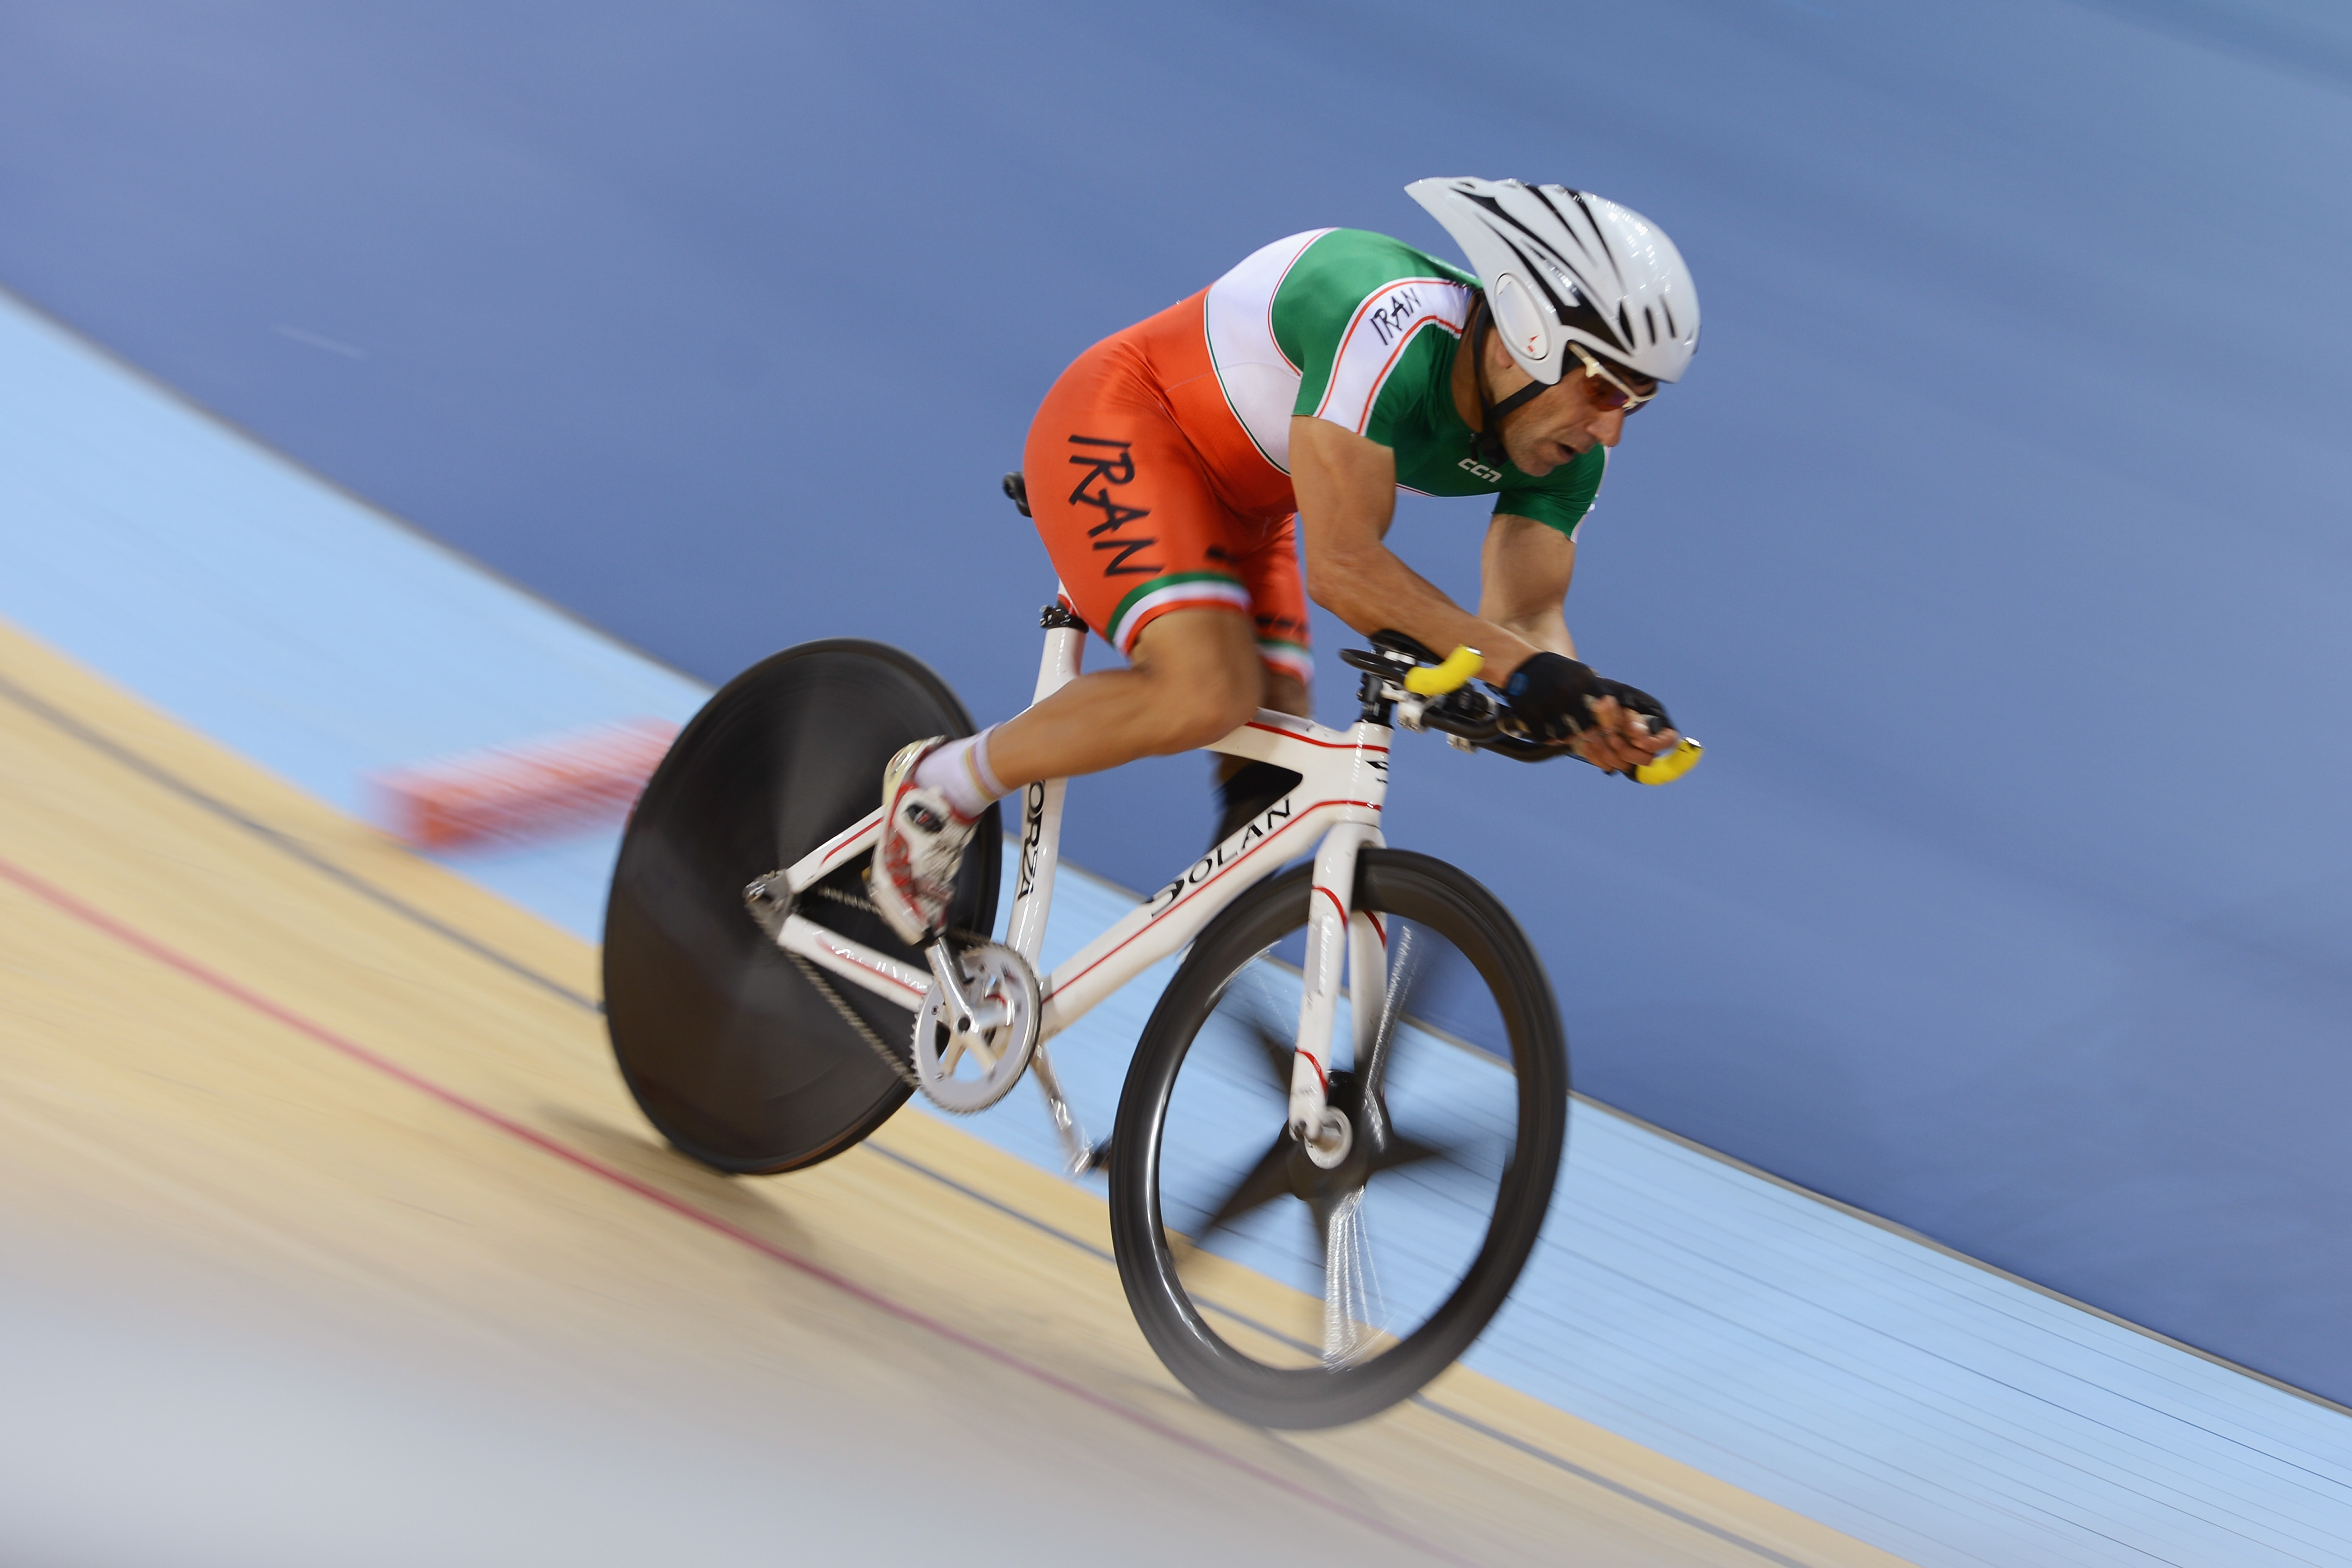 LONDON, ENGLAND - AUGUST 31: Bahman Golbarnezhad of Iran of Cuba competes in Men's Individual C4-5 1km Cycling Time Trial final on day 2 of the London 2012 Paralympic Games at Velodrome on August 31, 2012 in London, England. (Photo by Gareth Copley/Getty Images)